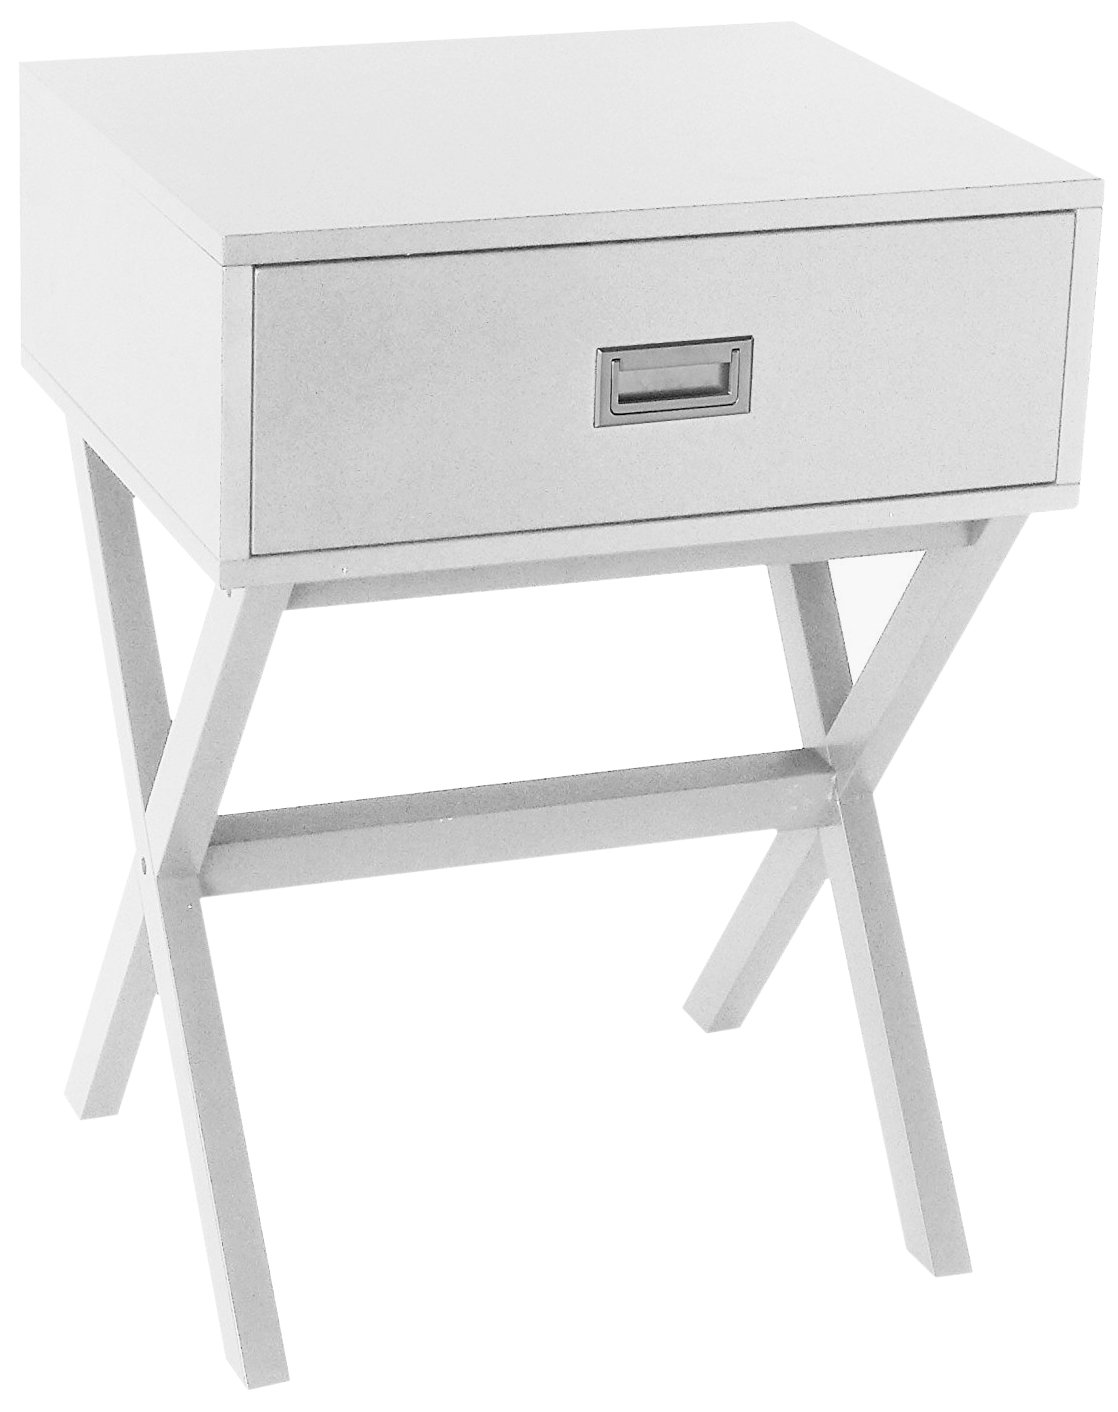 white finish modern side end table nighstand with drawer vlool winsome accent instructions kitchen dining leather living room sets tiffany desk lamp storage furniture grey set